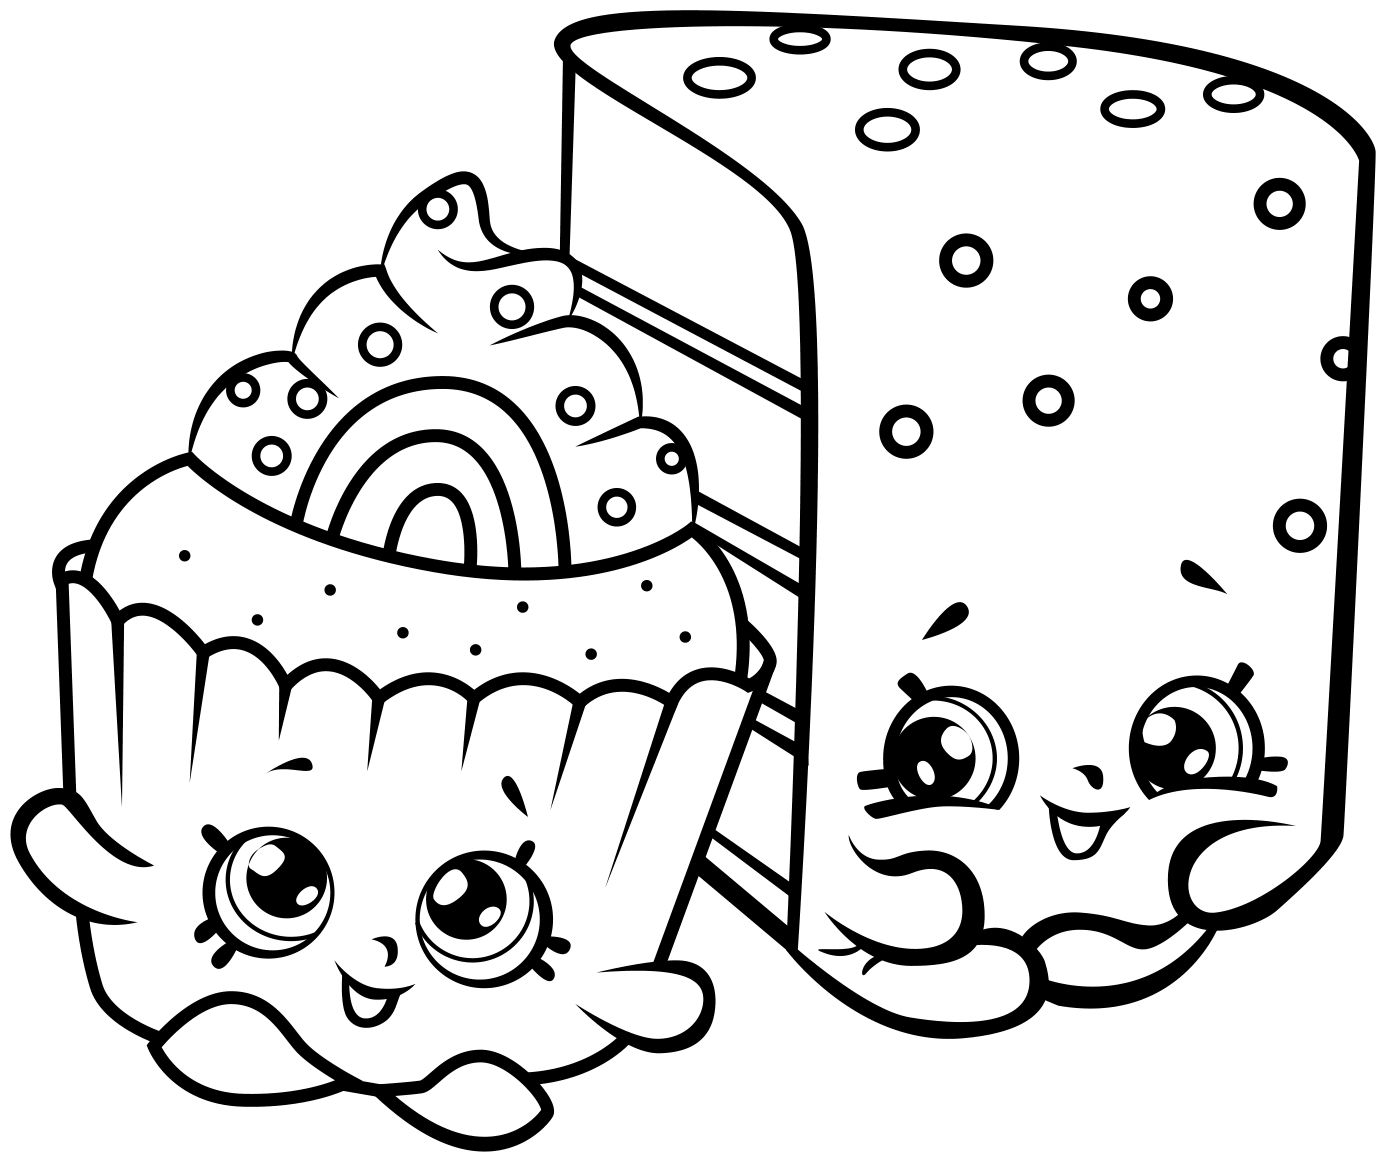 Coloring Printable Mped Coloring Page Printable 19845 Shopkins Colouring Pages Coloring Pages Pokemon Coloring Pages